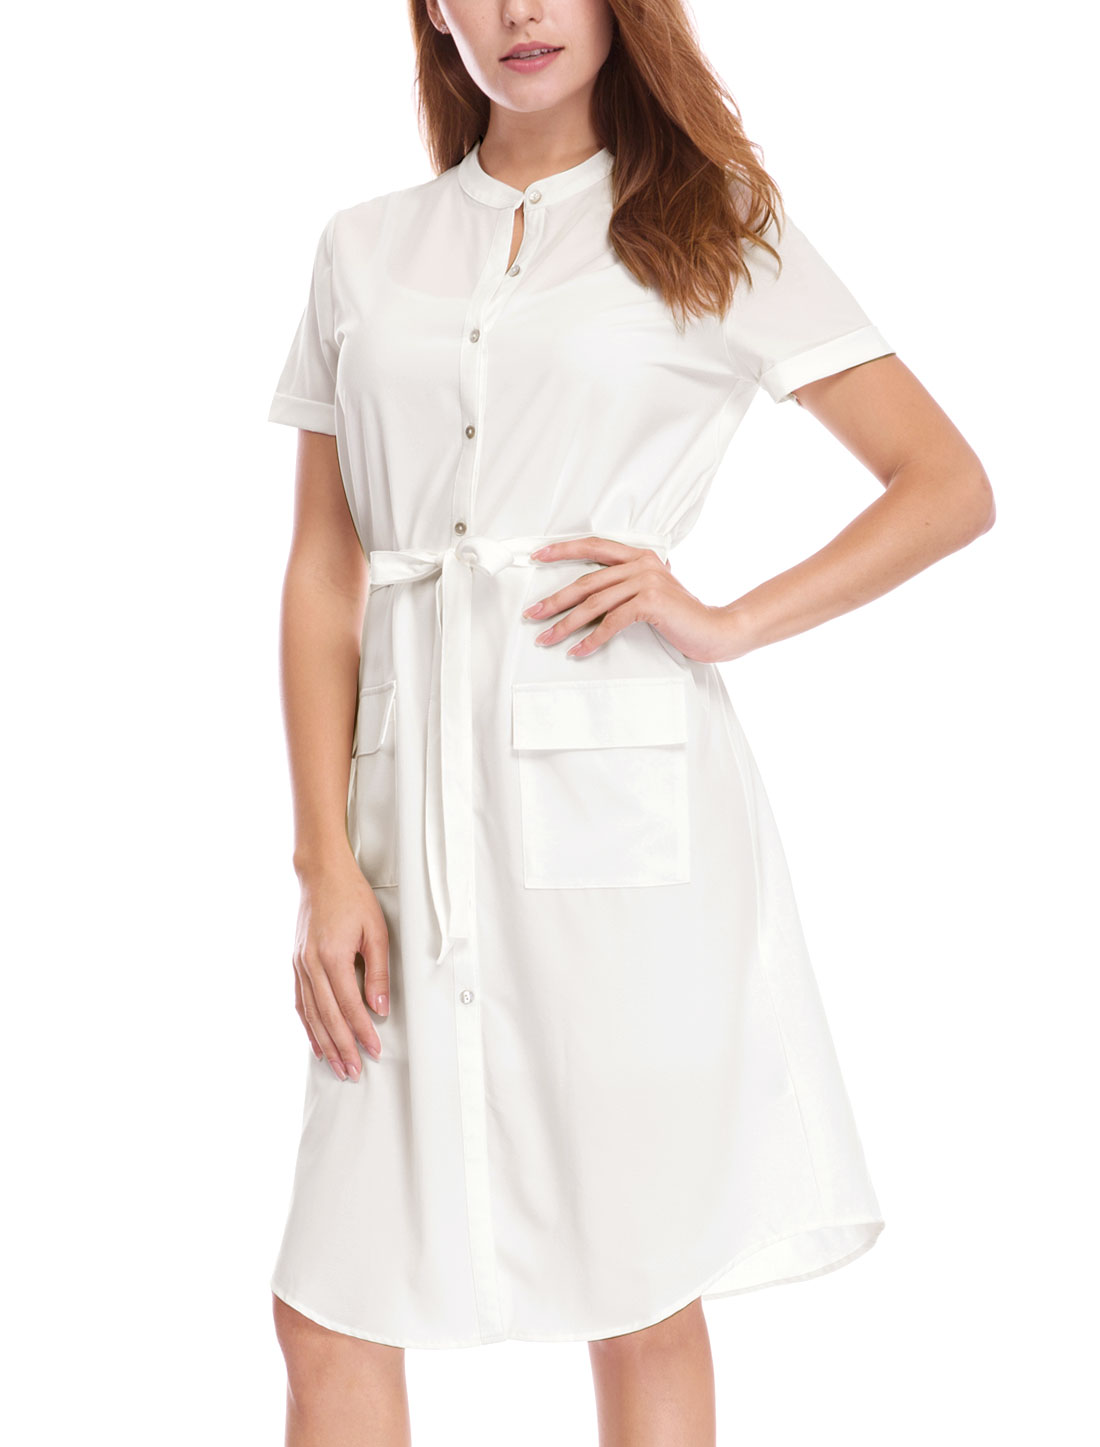 Women Short Sleeves Pockets Belted Midi Shirt Dress Ivory XL